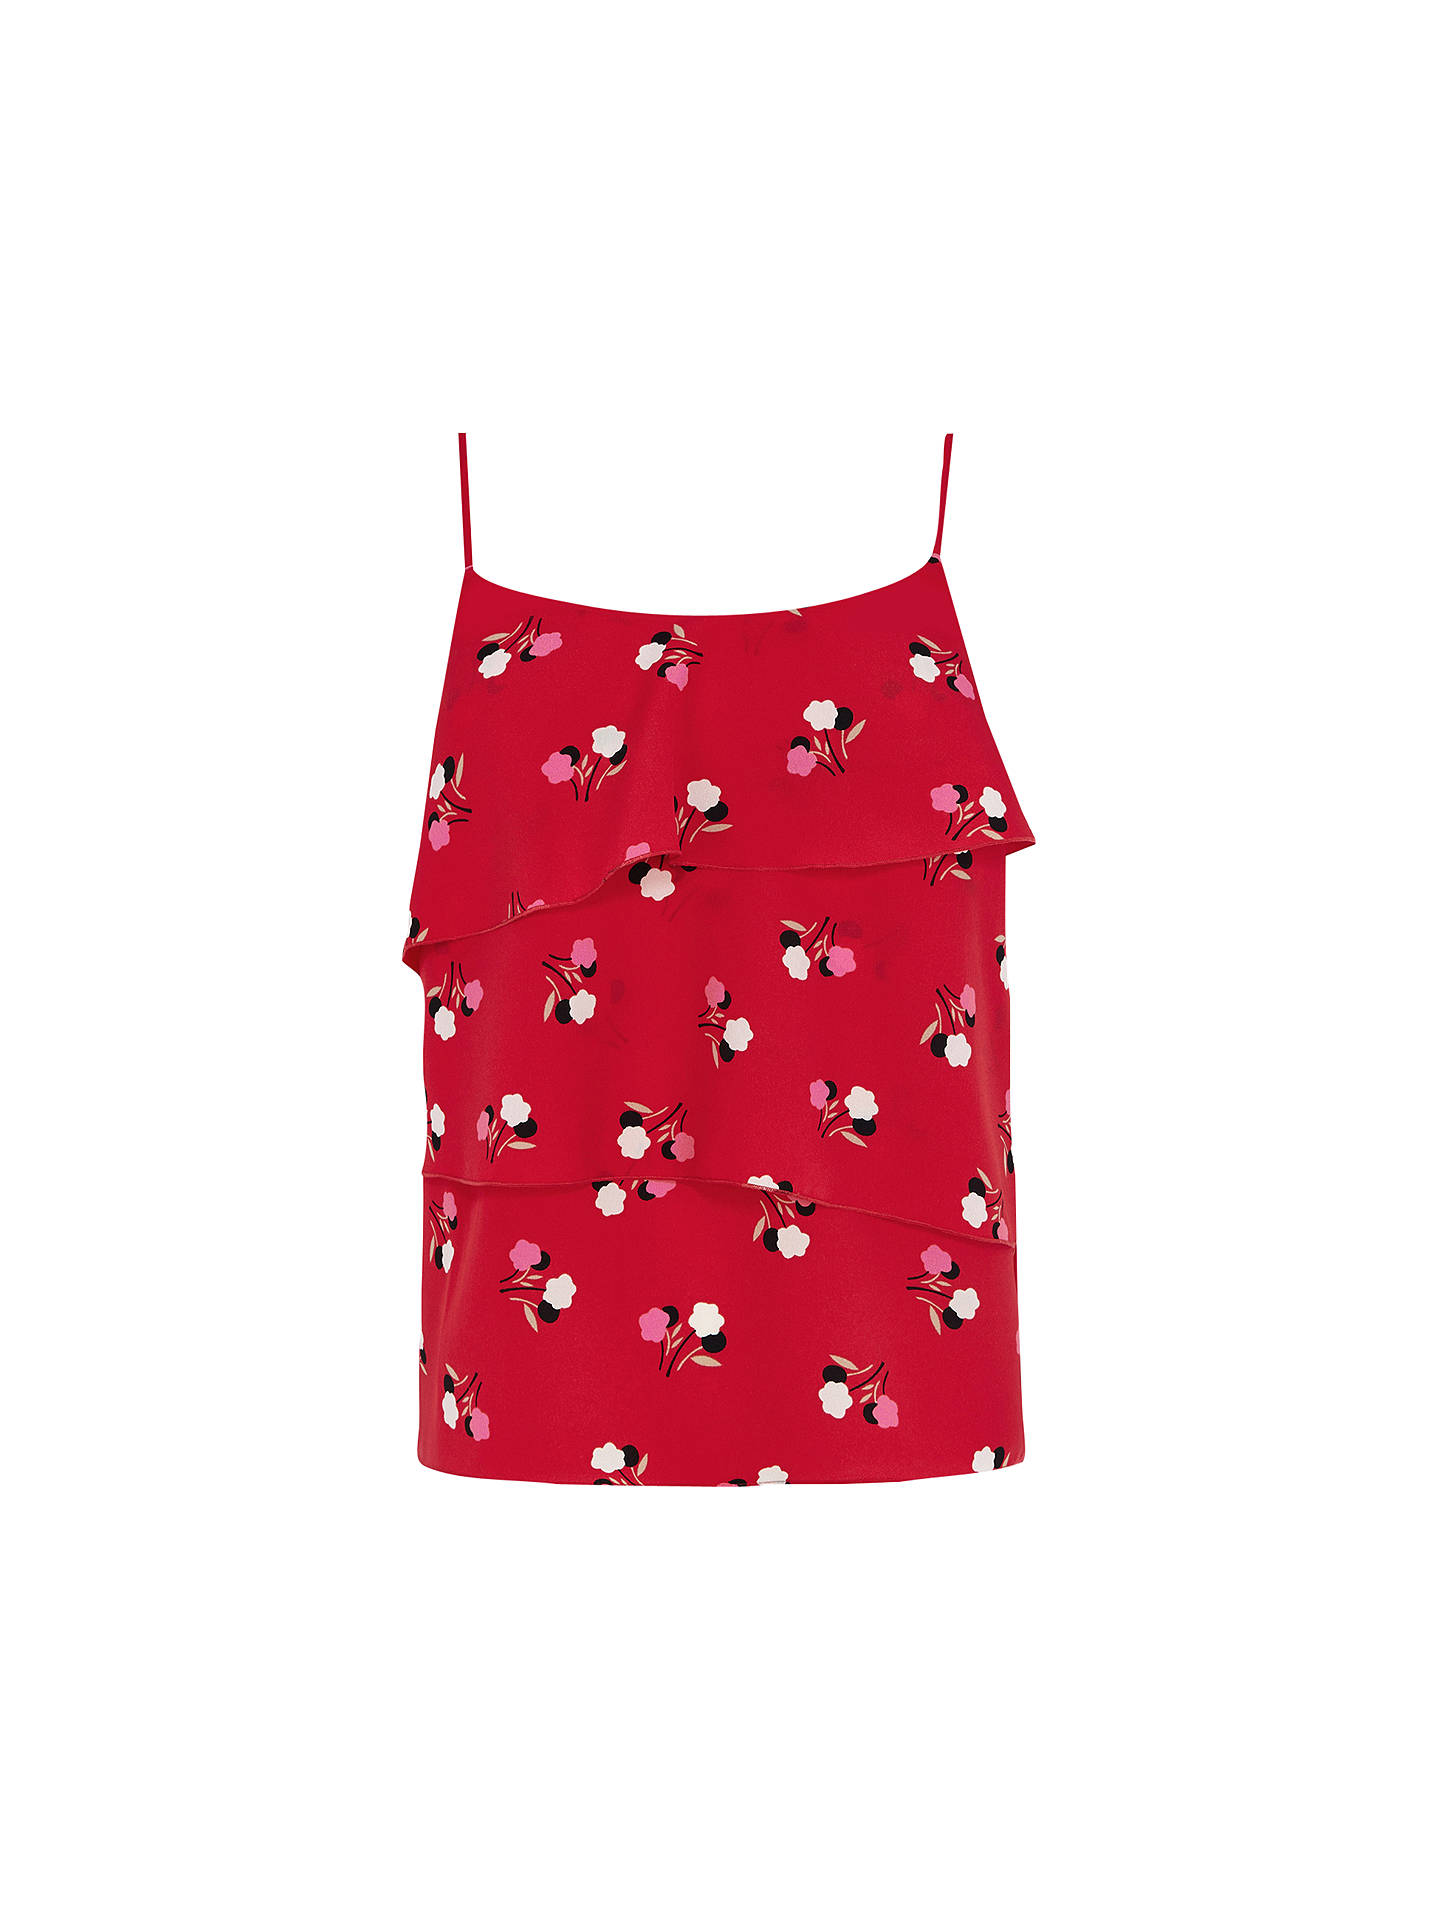 66cac03f469d Buy Oasis Pop Floral Cami Top, Red/Multi, 8 Online at johnlewis.